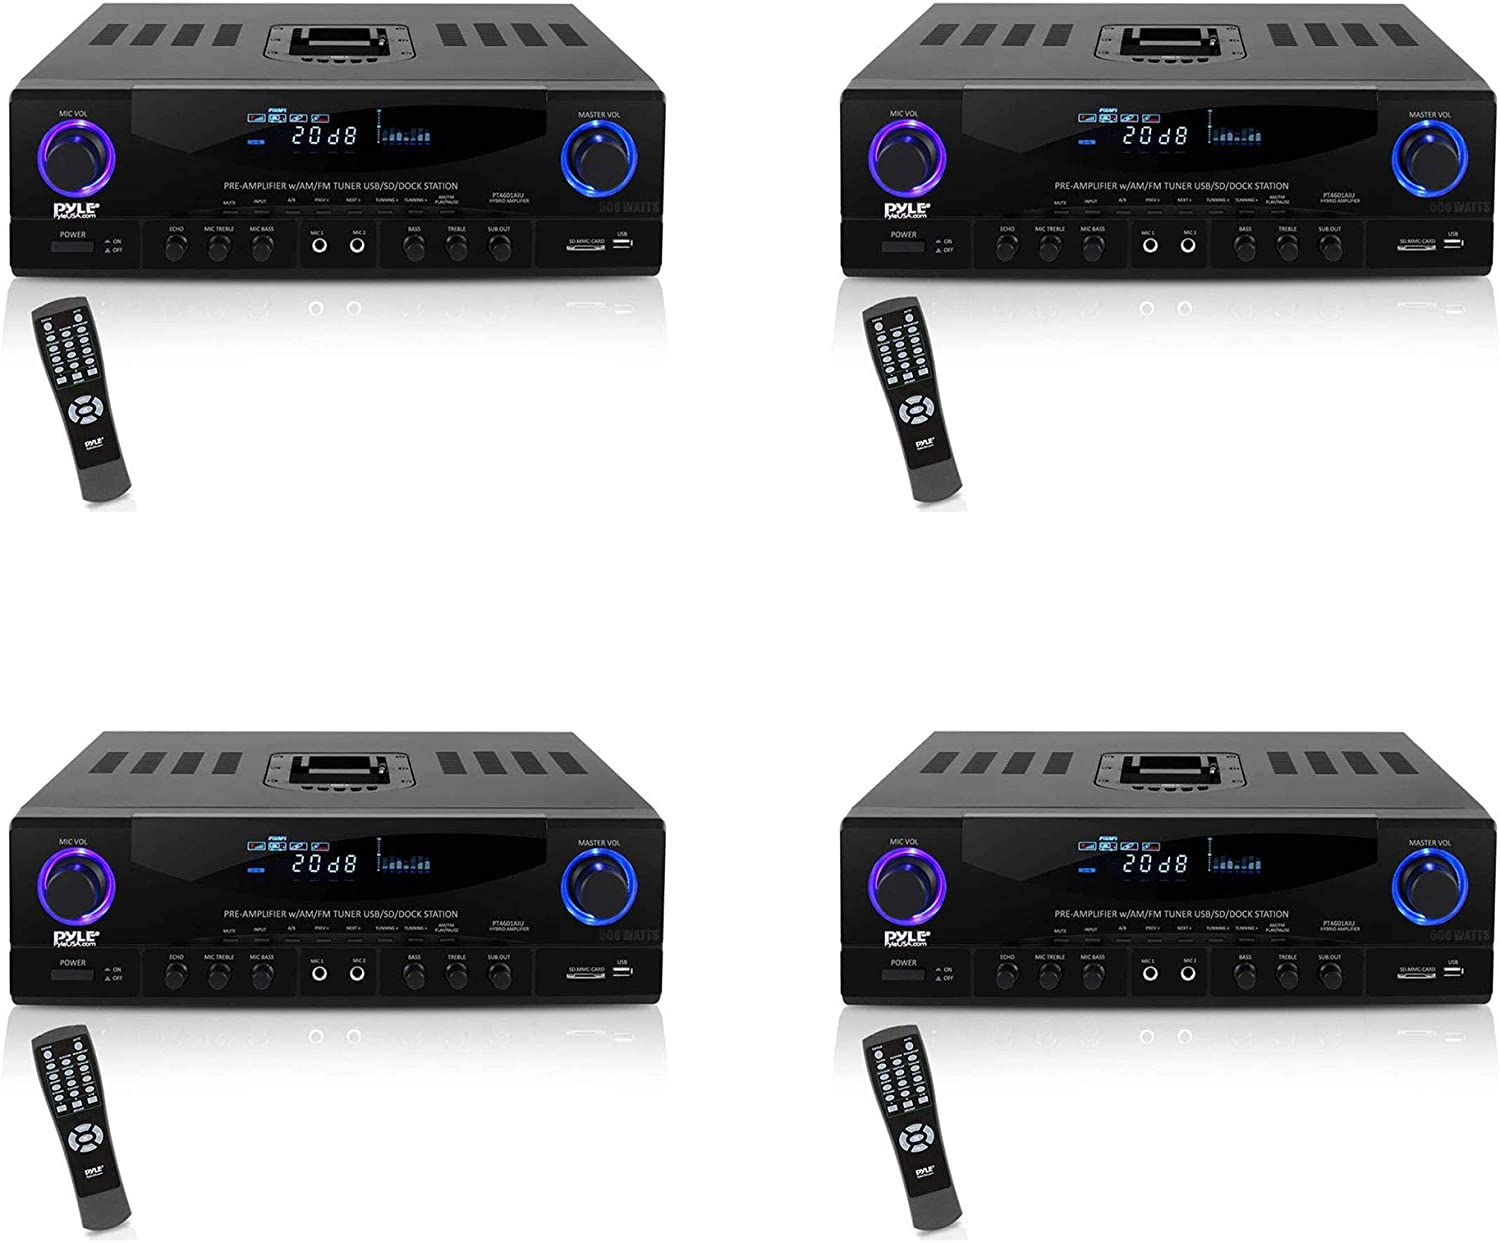 Pyle PT4601AIU 500 Watt 2 Channel Multi Device Compatible Home Theater Sound System Power Stereo Amplifier Receiver with AM/FM Radio, (4 Pack)